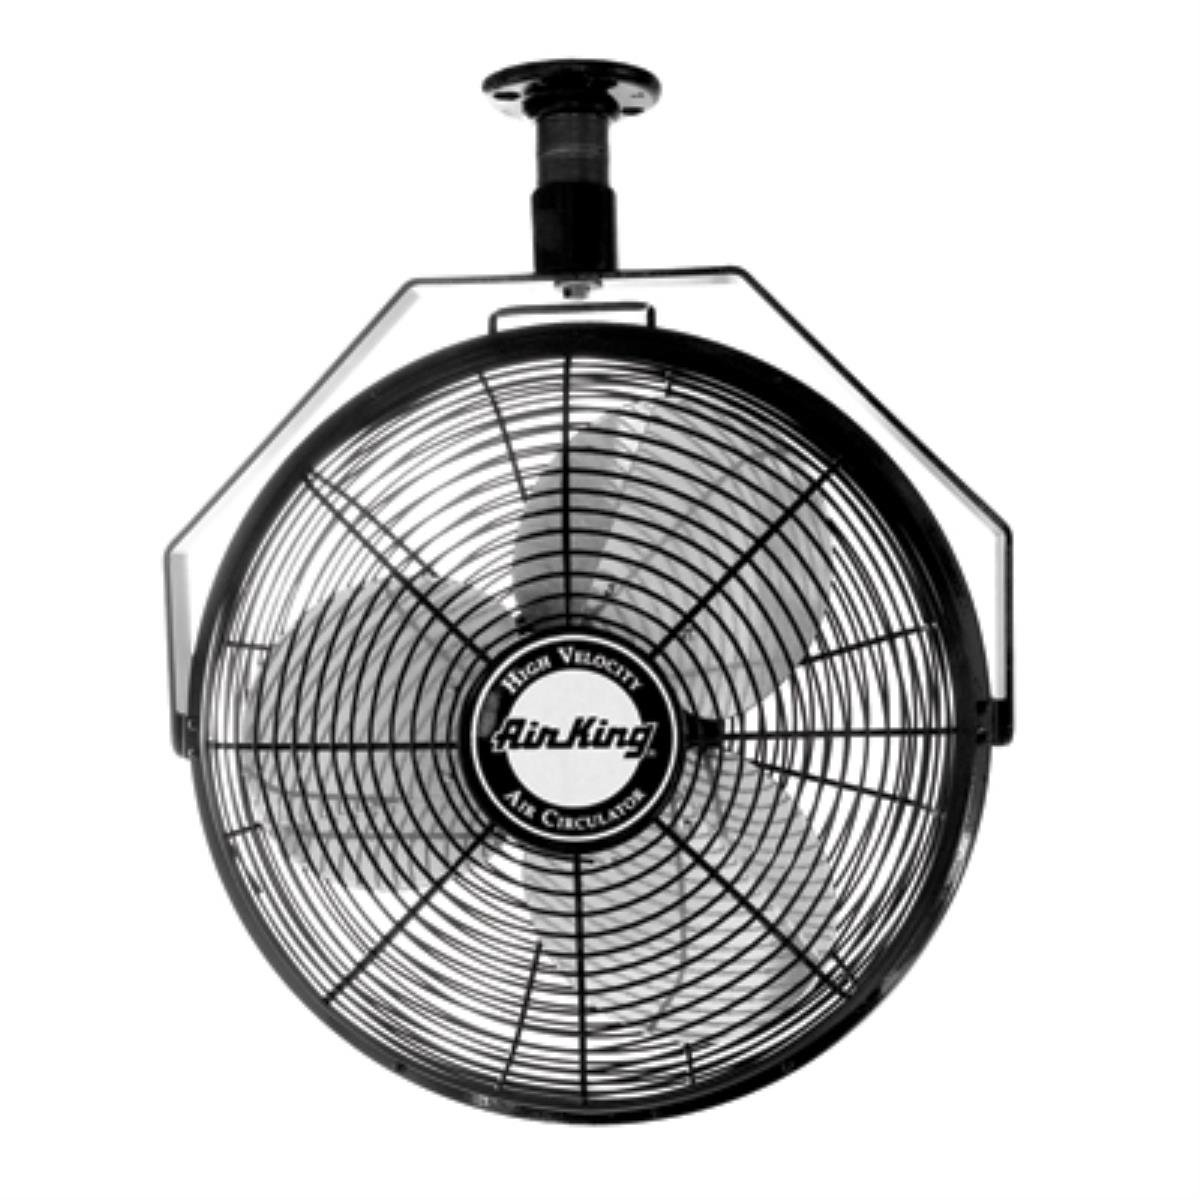 Amazon air king 9718 18 inch industrial grade ceiling mount fan amazon air king 9718 18 inch industrial grade ceiling mount fan home kitchen aloadofball Gallery